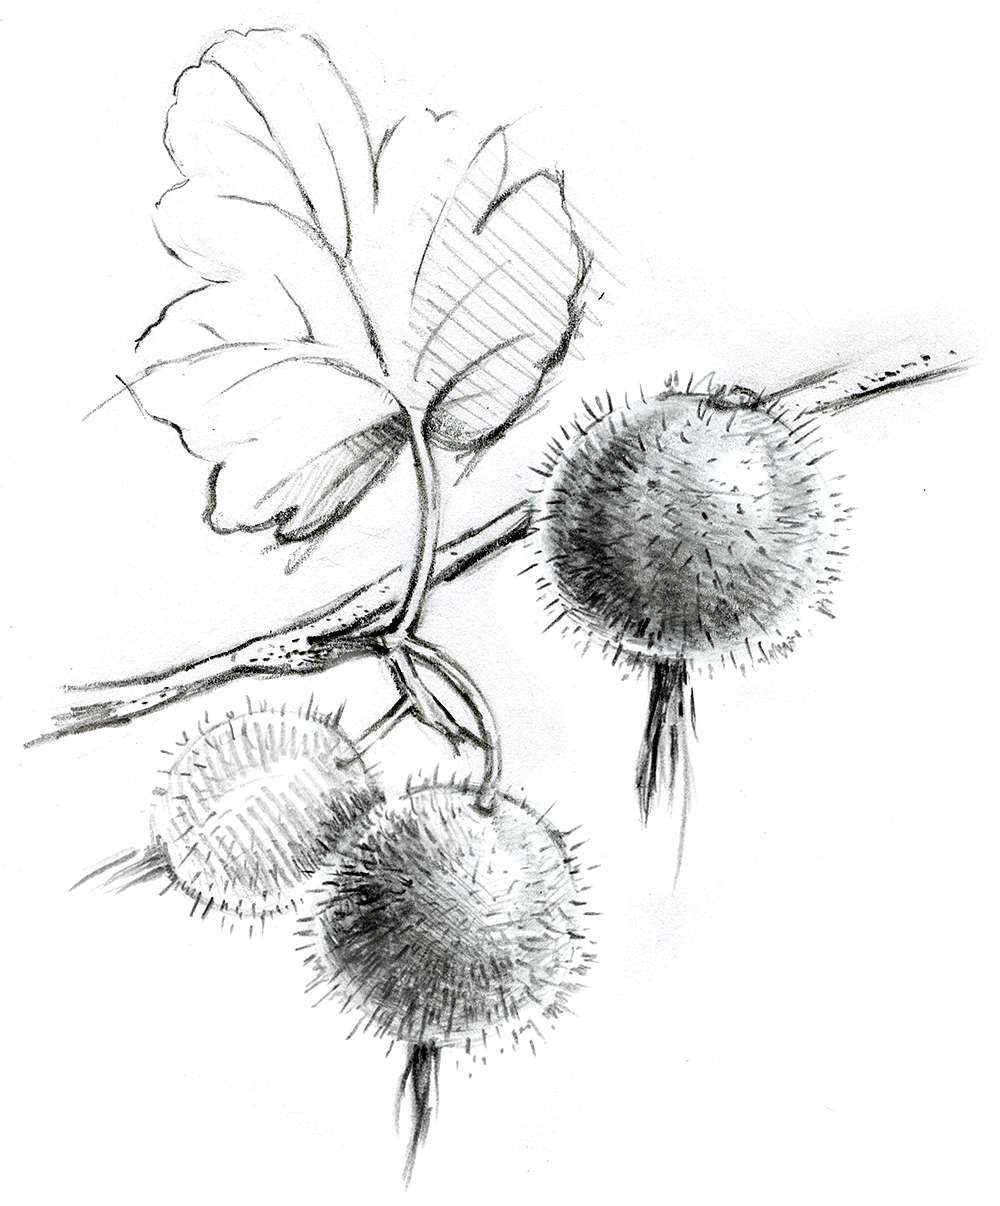 Drawing of plant with berries